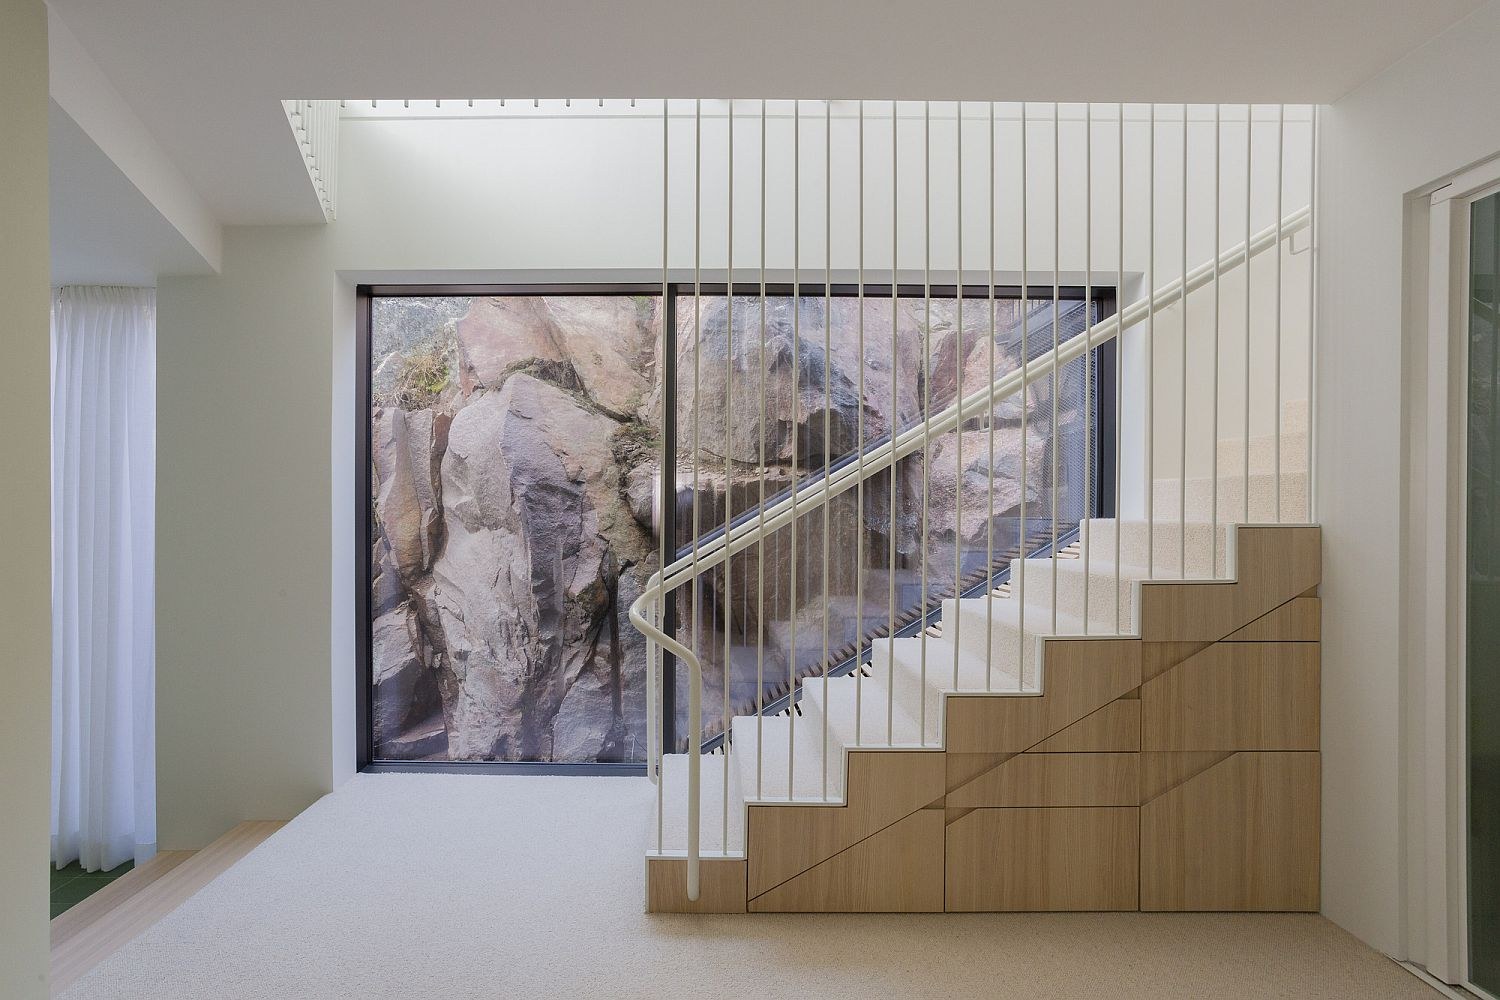 Wooden blocks with built-in storage used to create a lovely staircase